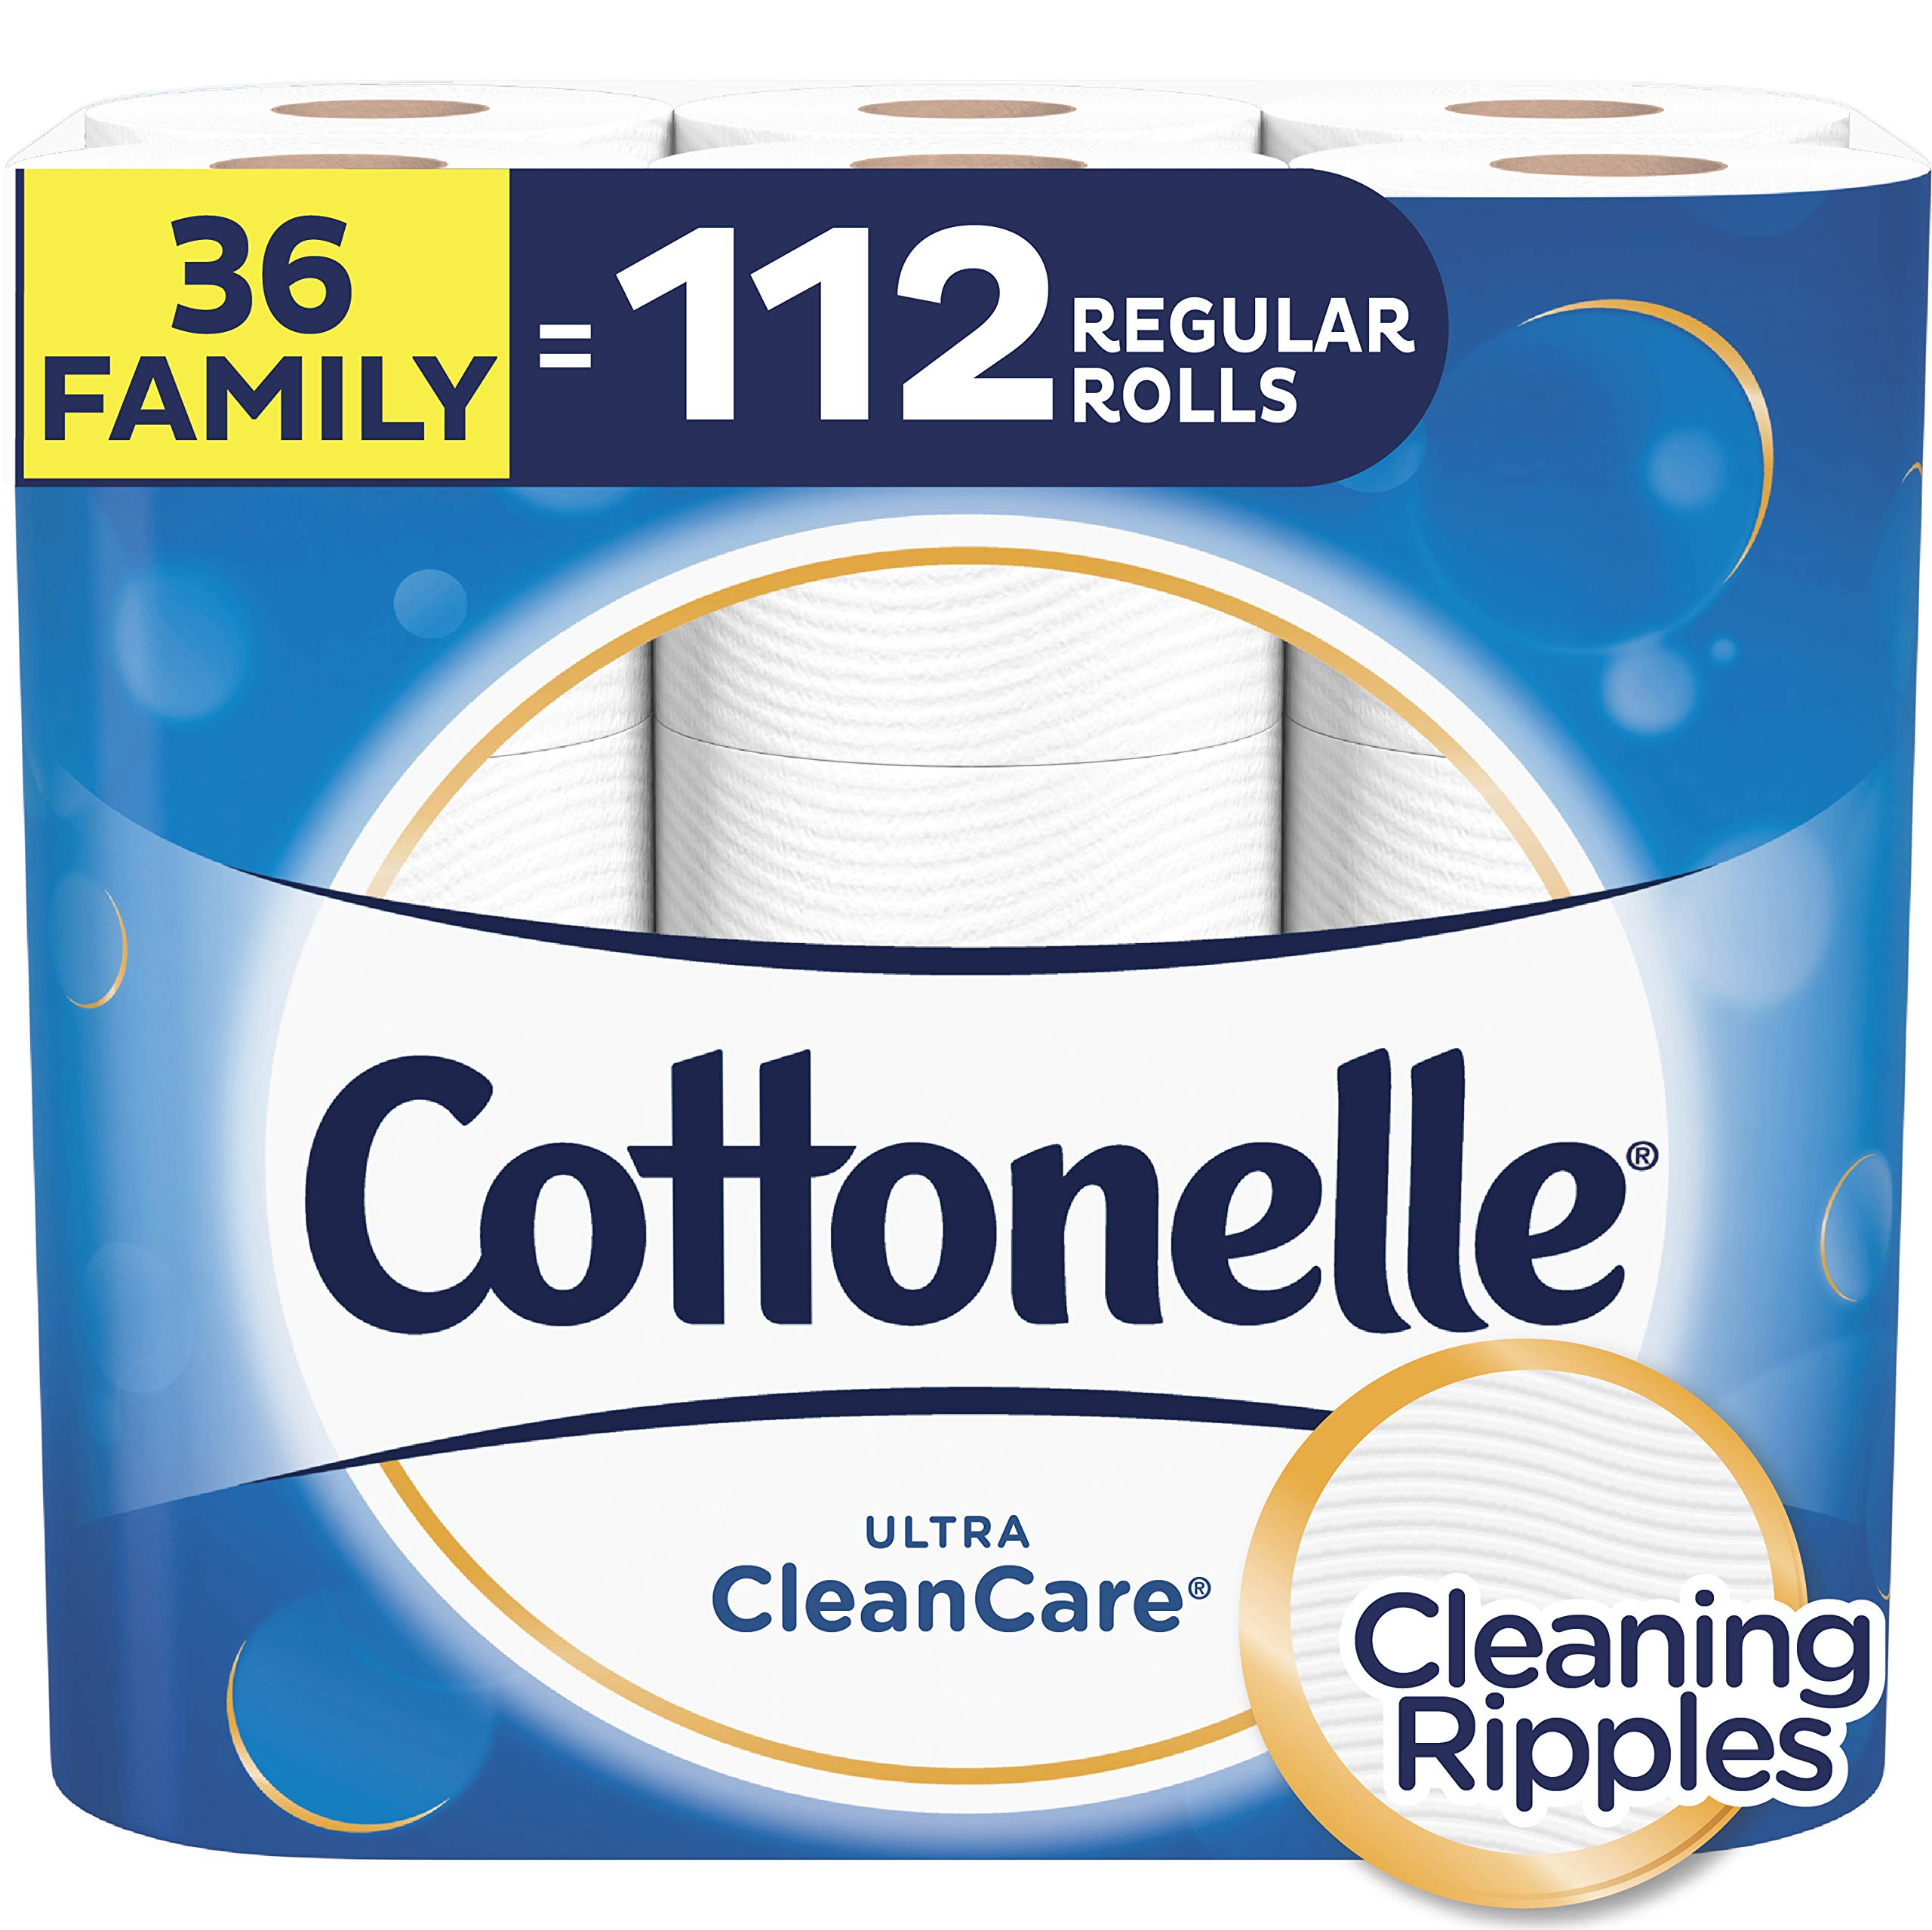 Cottonelle Ultra CleanCare Toilet Paper, Strong Bath Tissue, Septic-Safe, 36 Family+ Rolls by Cottonelle